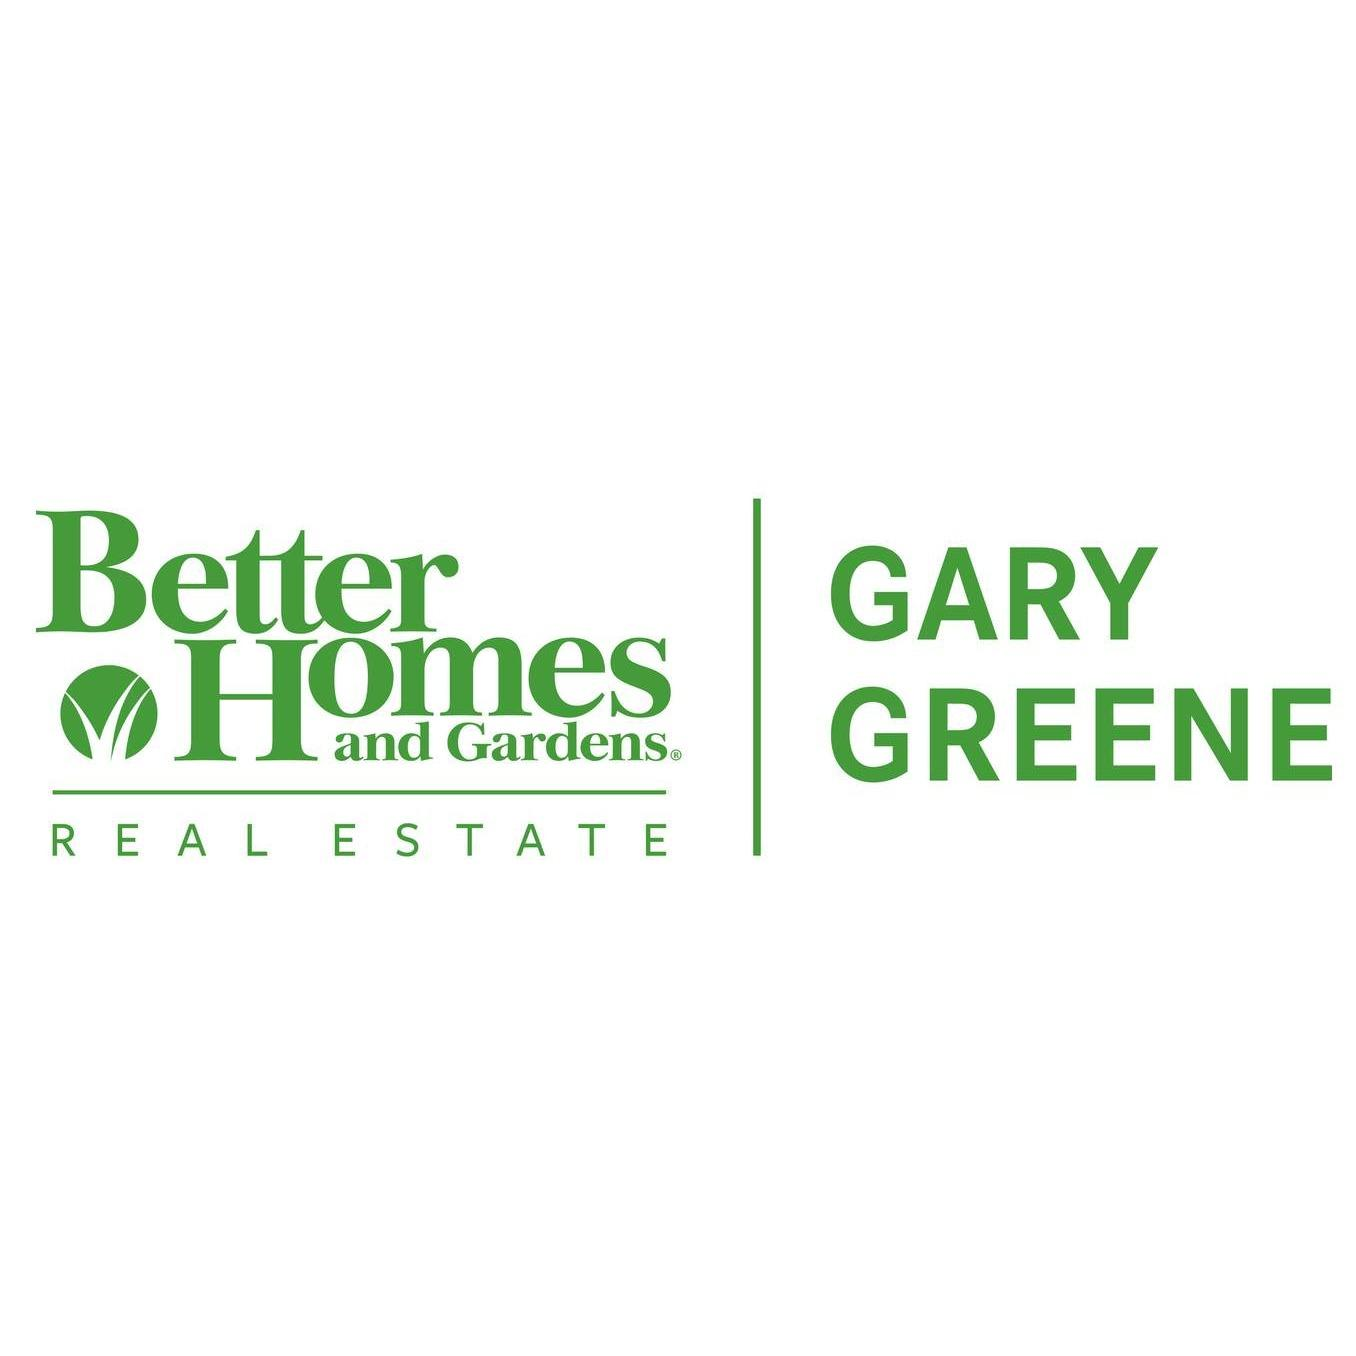 Nancy Seale | Better Homes and Gardens Real Estate | Gary Greene